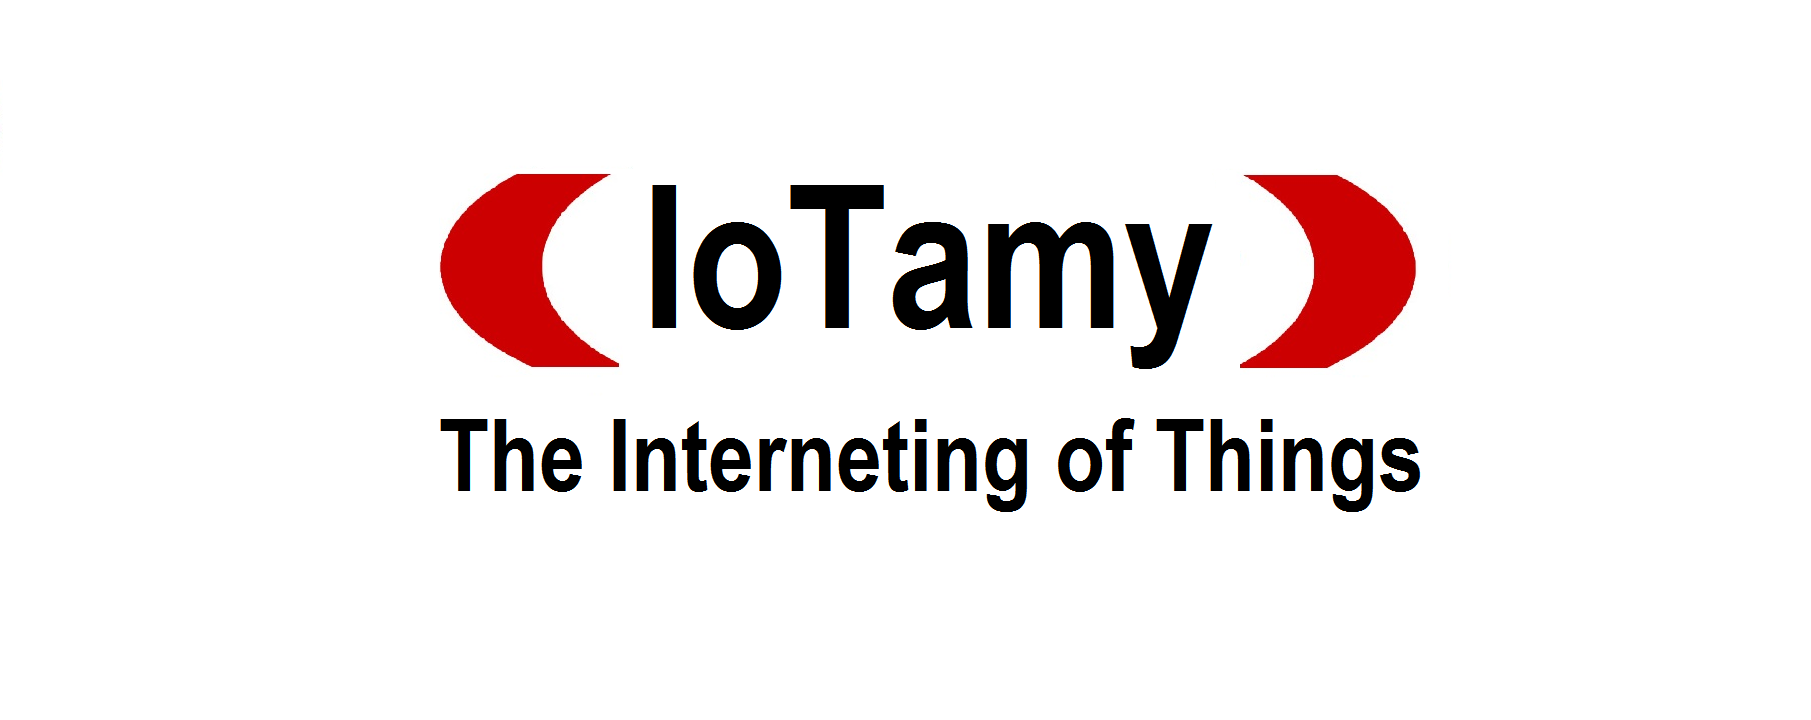 IoTamy, the Interneting of Things